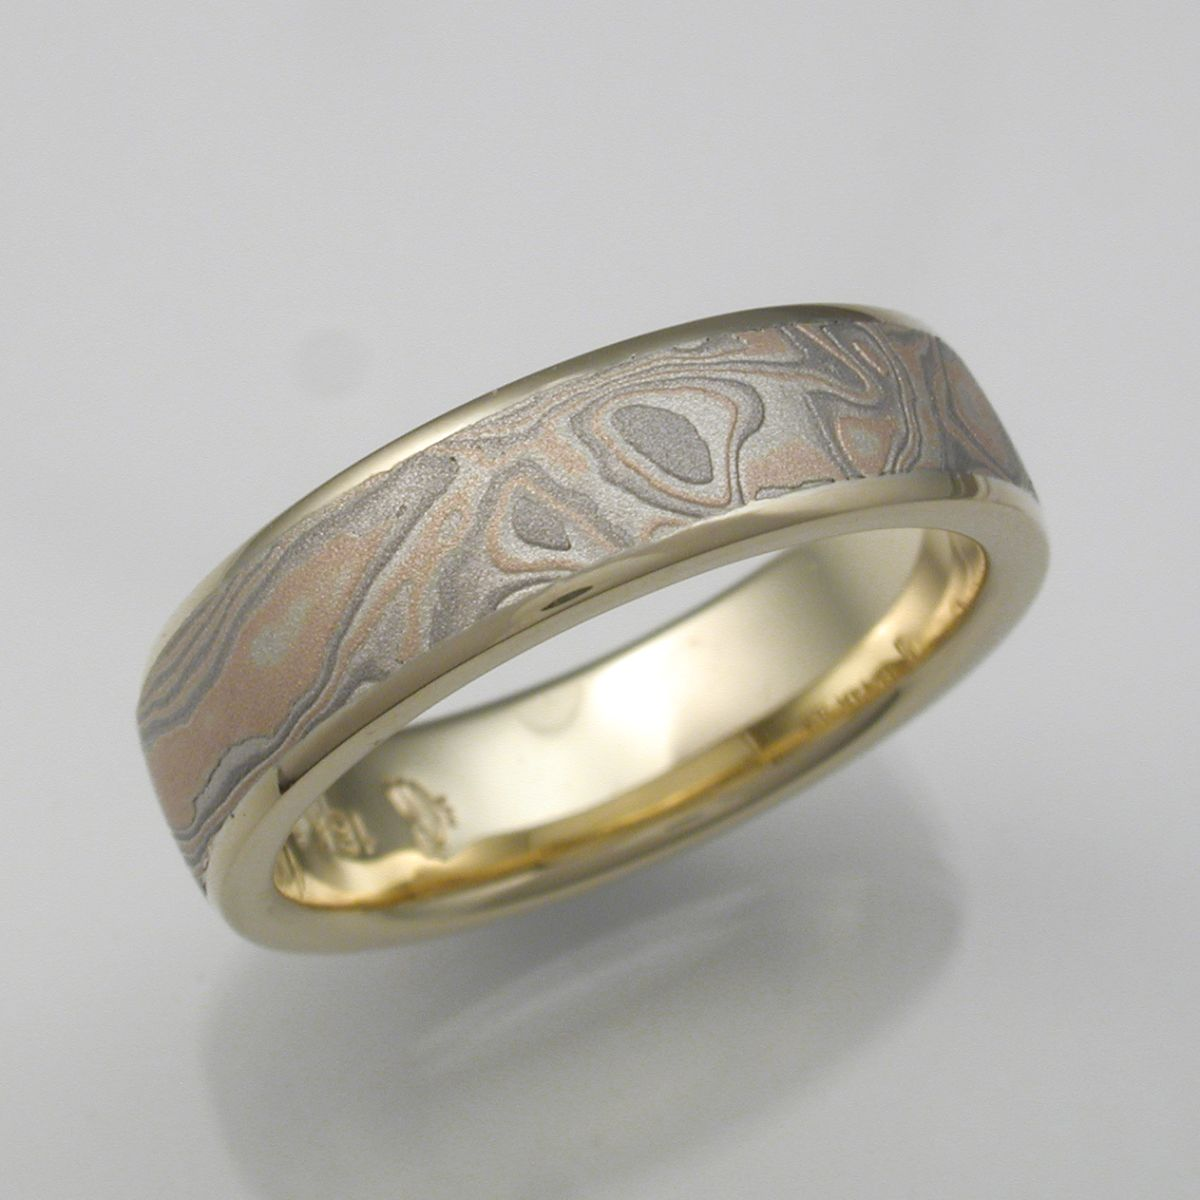 qalo wedding bands for nurses Subscribe to our mailing list